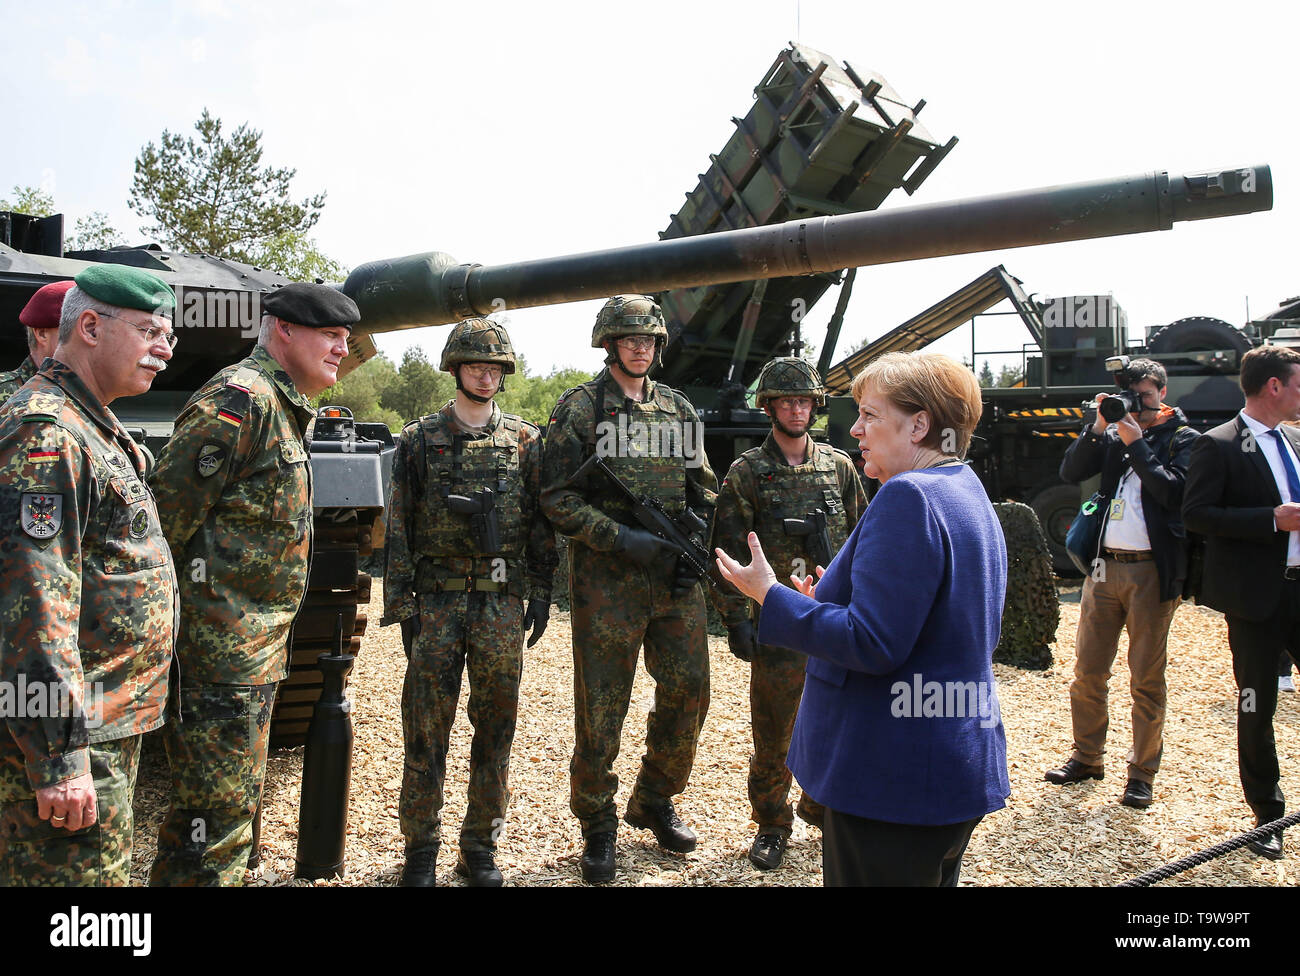 Munster, Germany. 20th May, 2019. German Chancellor Angela Merkel (R, Front) talks with members of NATO'S Very High Readiness Joint Task Force during her visit in Munster, Germany, on May 20, 2019. Merkel on Monday assured Germany's help for Ukraine to solve the conflicts in its Donbas region. She made the statement during her visit to a rapid reaction force of NATO in Germany's Munster. Credit: Shan Yuqi/Xinhua/Alamy Live News - Stock Image